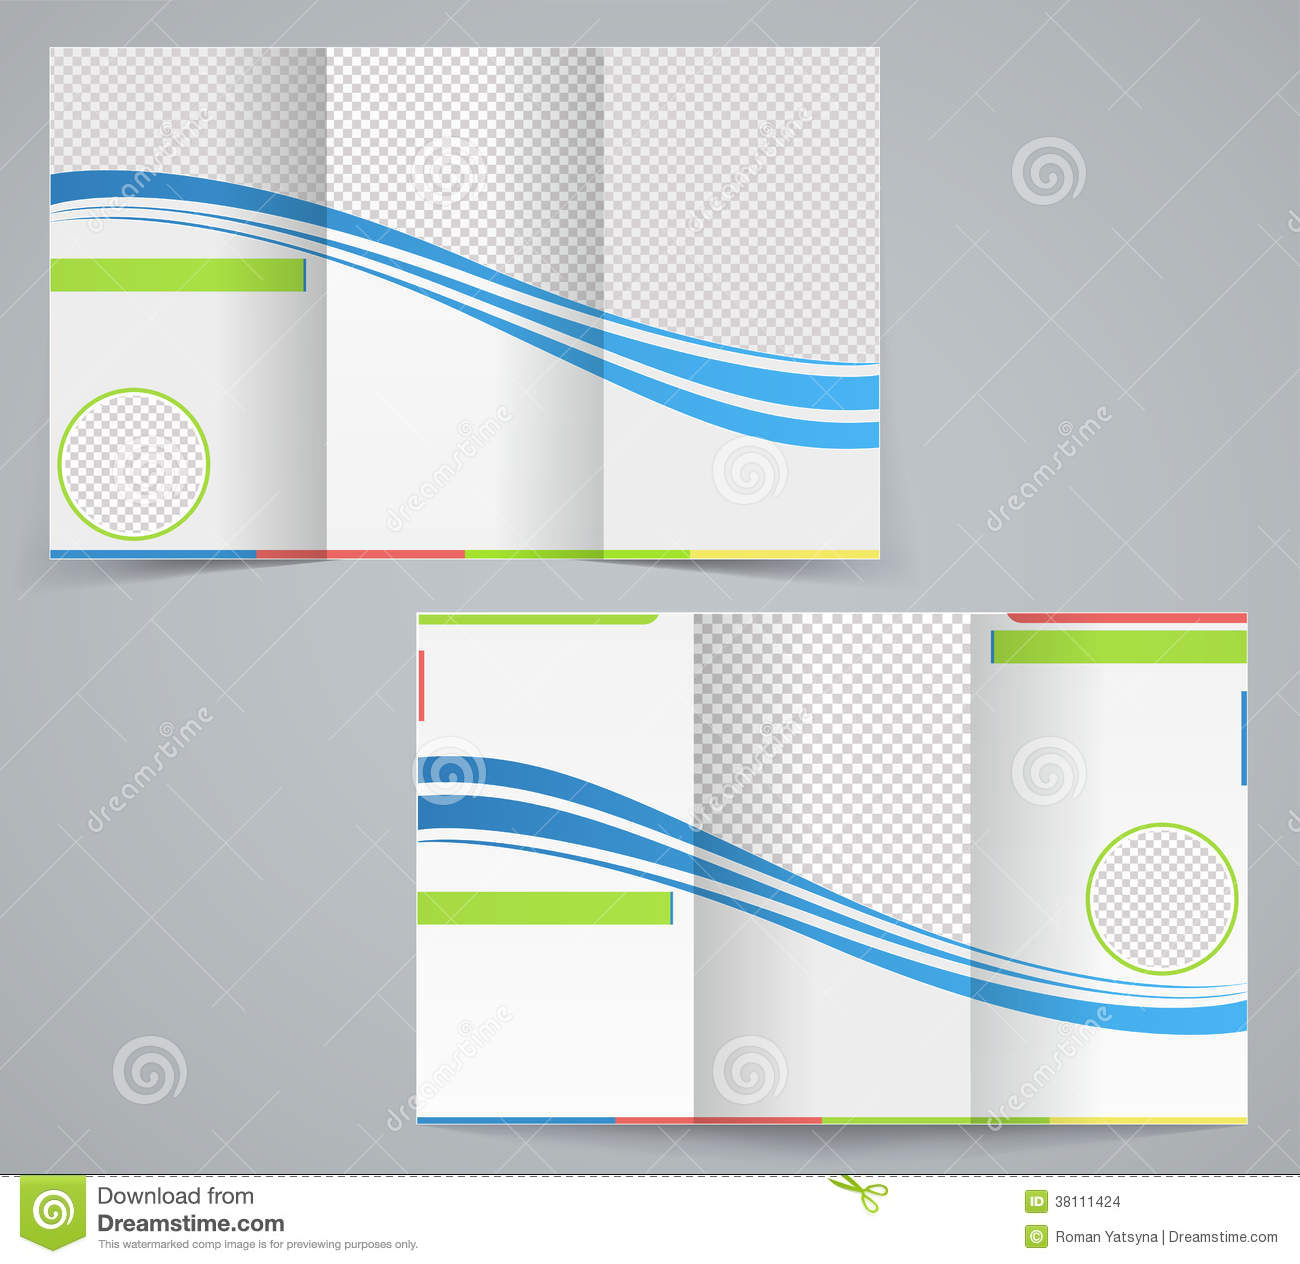 Trifold Business Brochure Template Stock Vector Illustration Of - Blank brochure templates